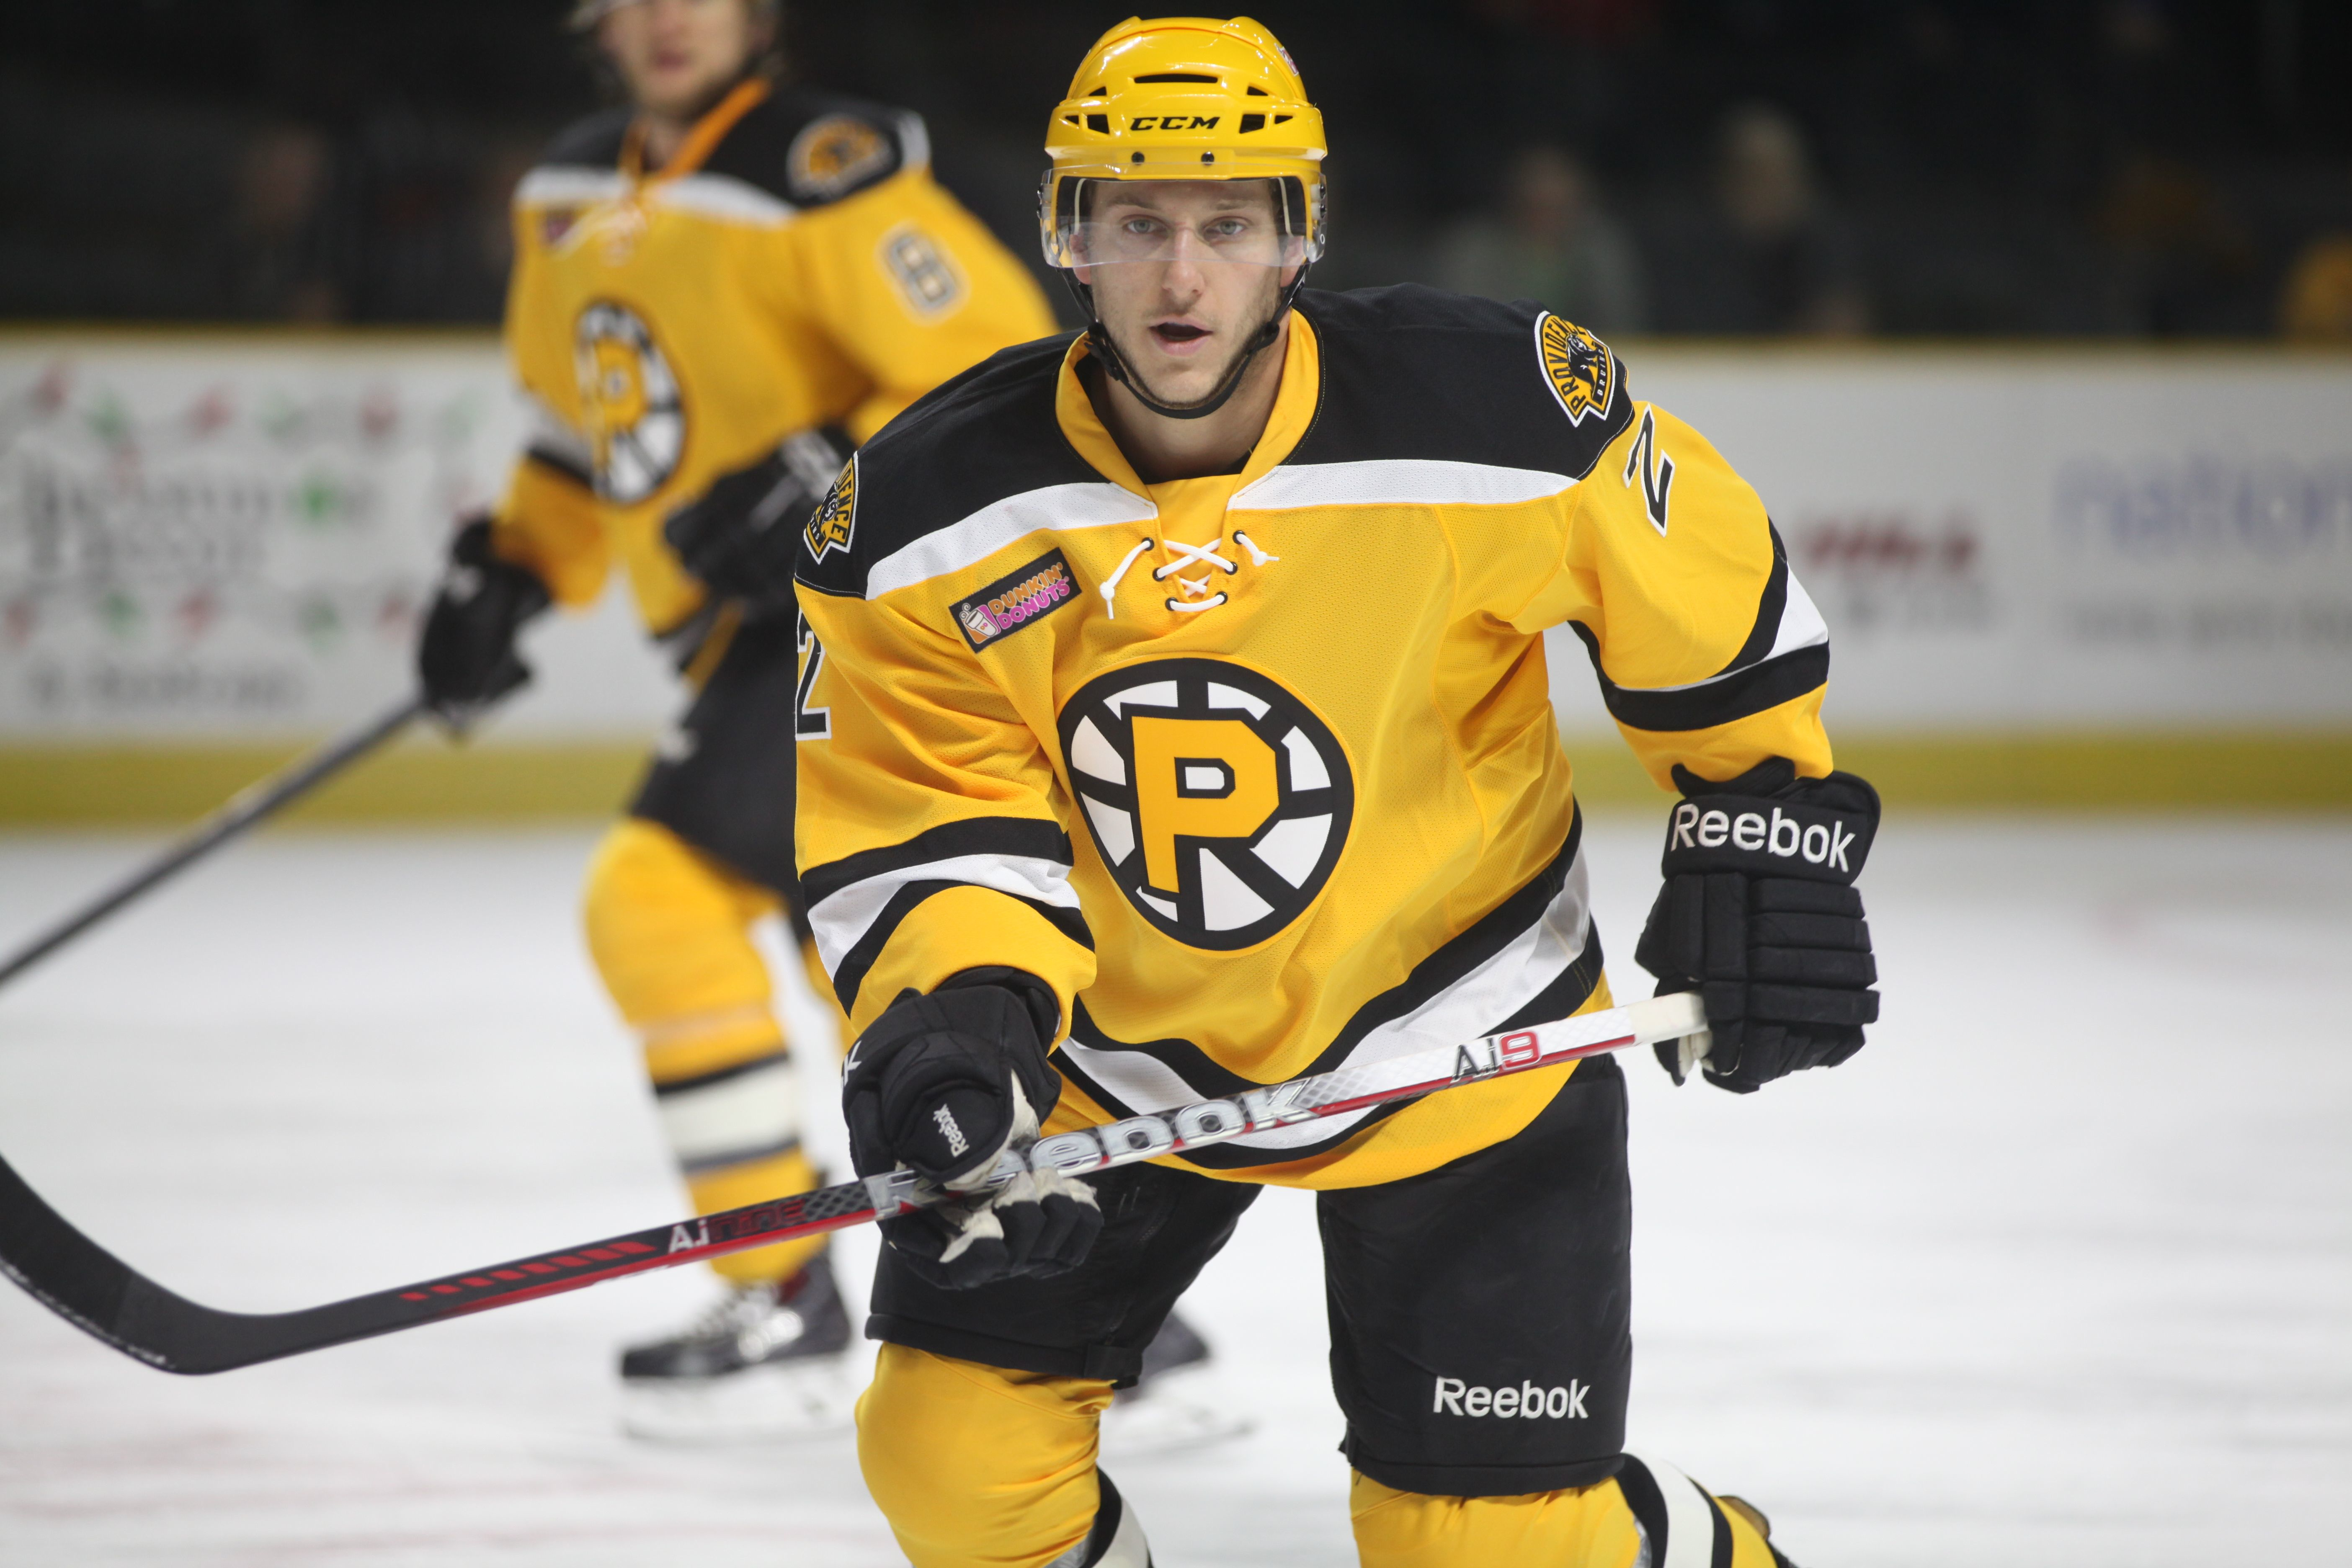 fd432a968 3rd year undrafted defenseman Ben Youds(2) is looking to best his AHL  rookie season career highs in a big way